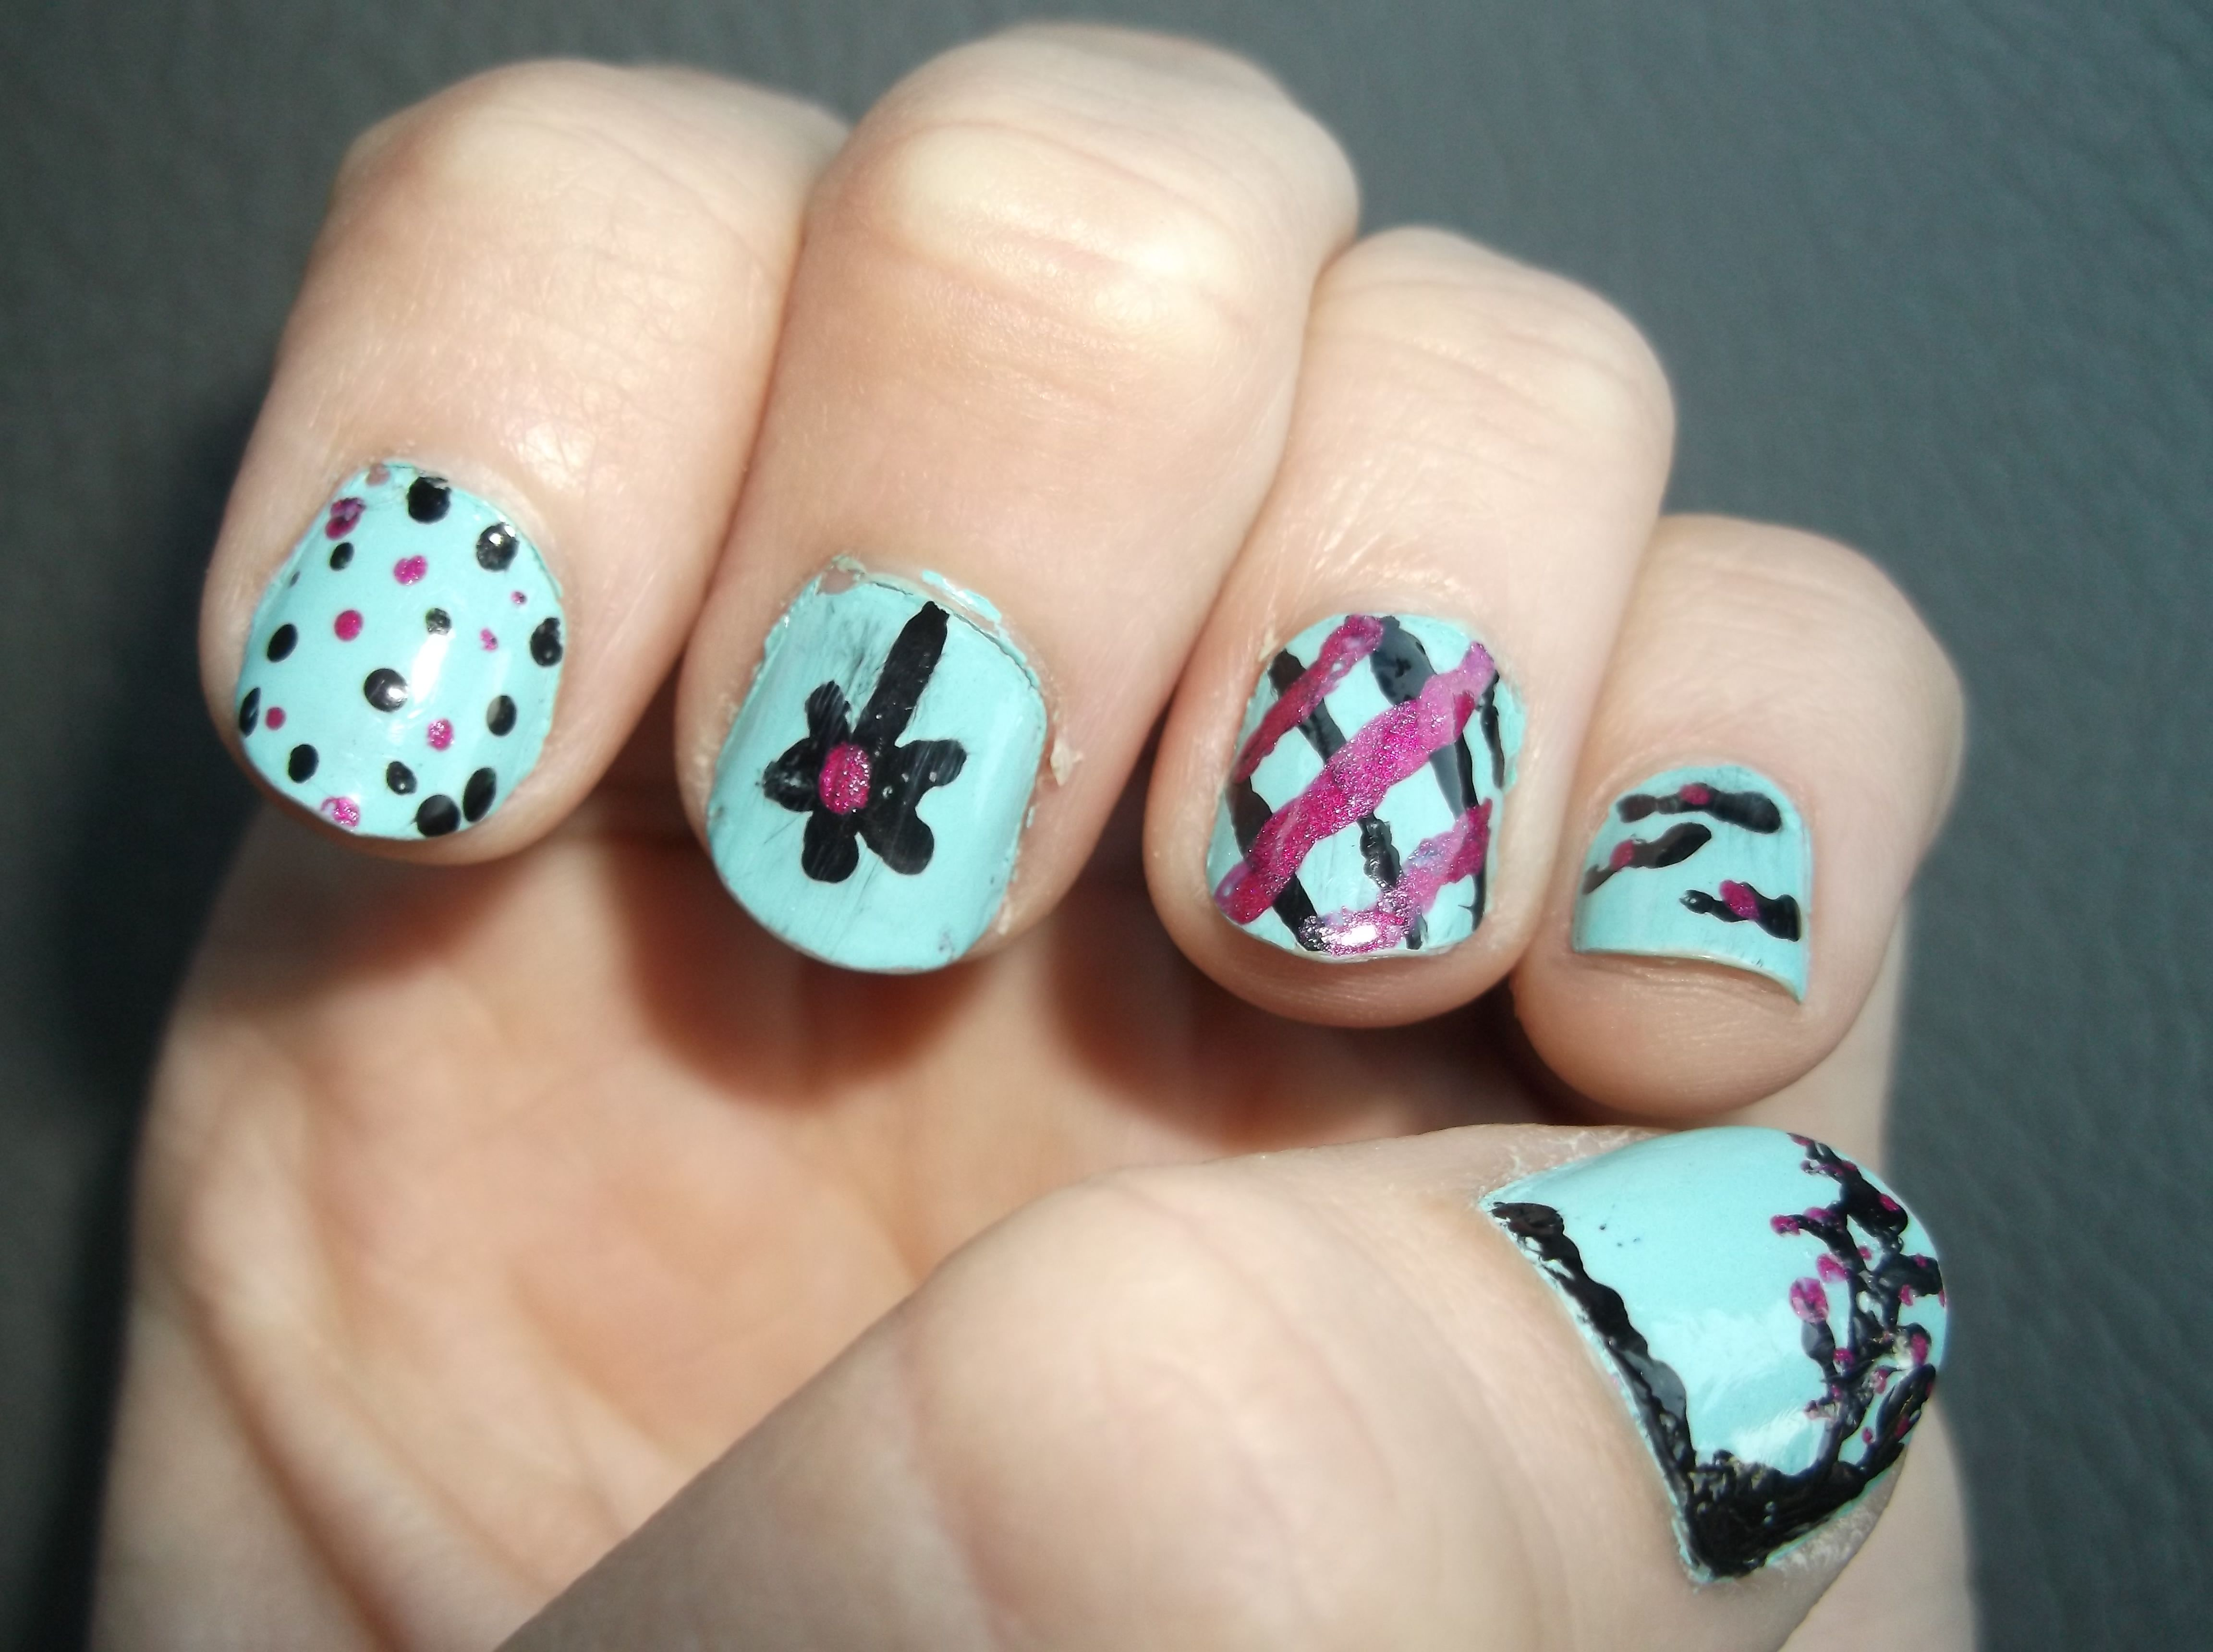 Love These Colors Together Theres A Different Design On Each Nail